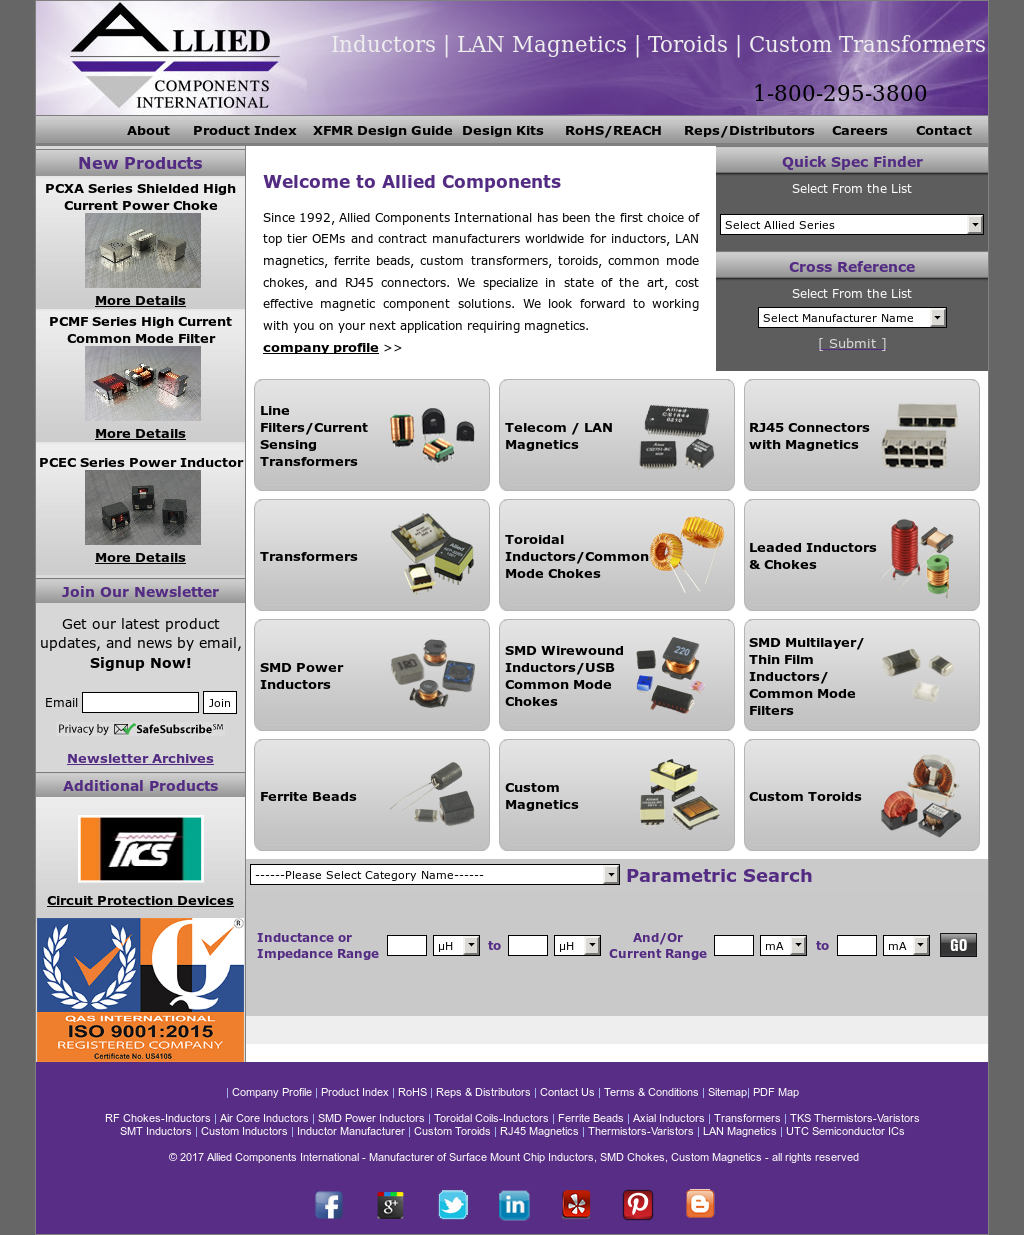 Allied Components International Competitors, Revenue and